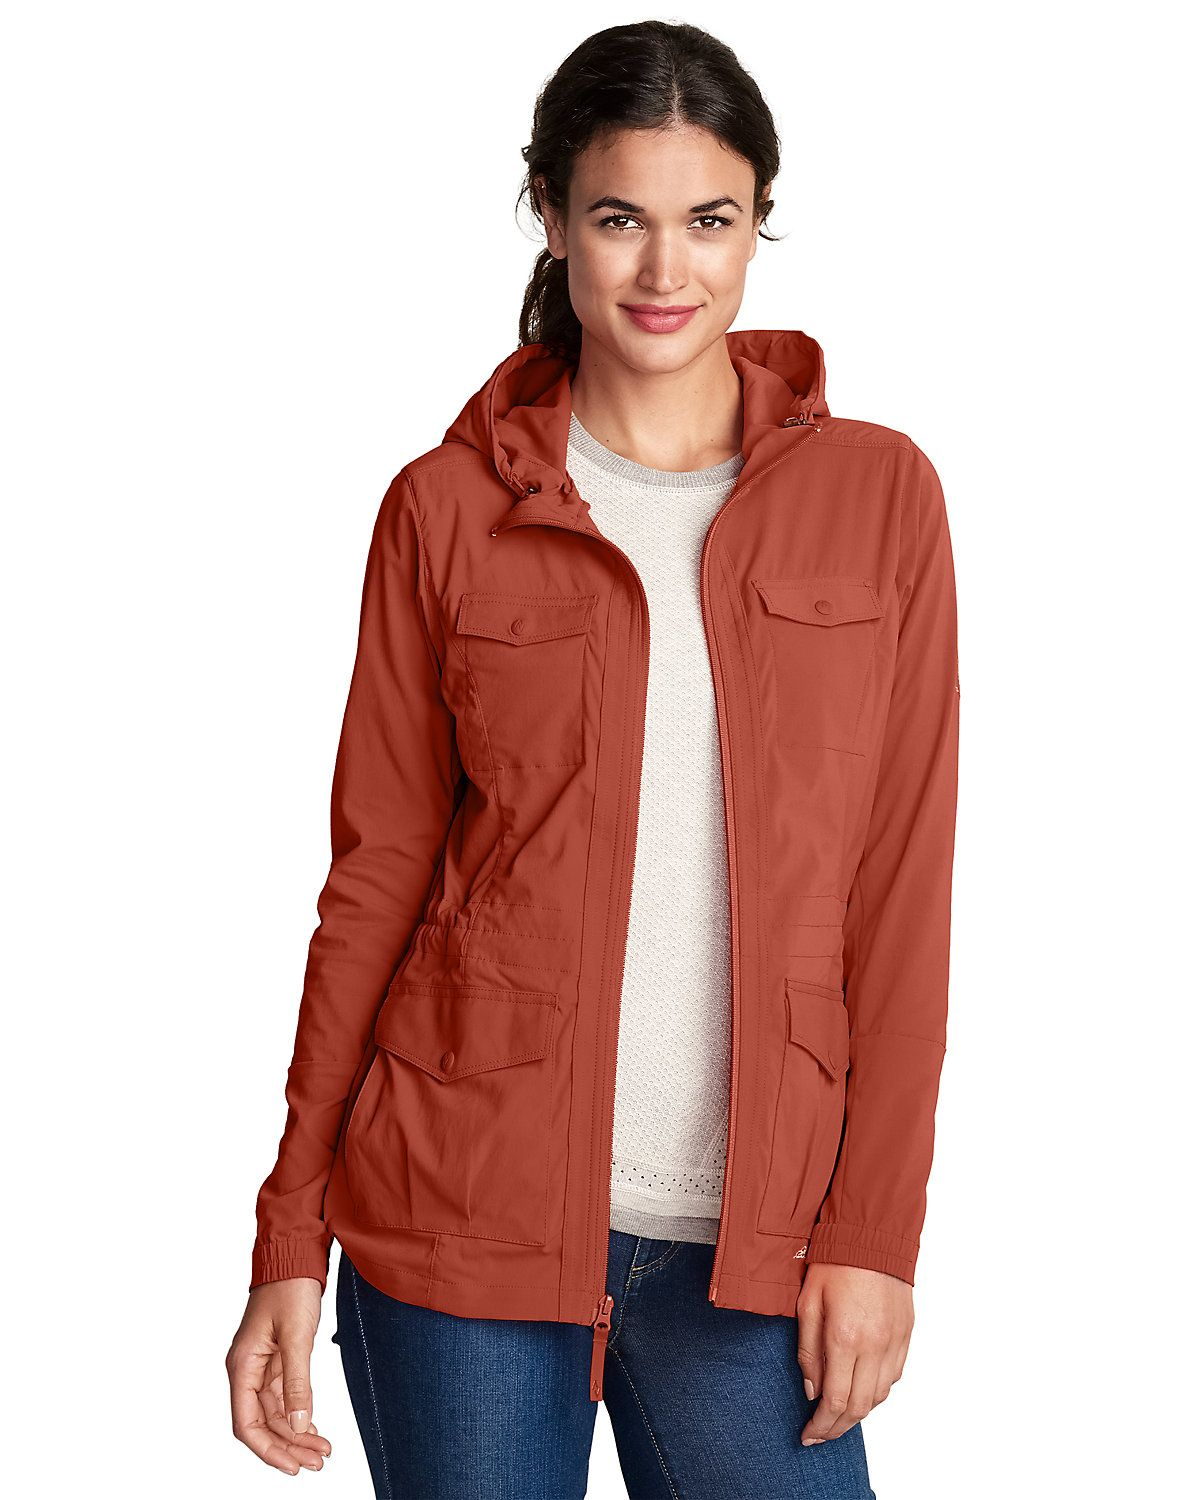 Women's Atlas 2.0 Jacket | Jackets, Women, Eddie bauer